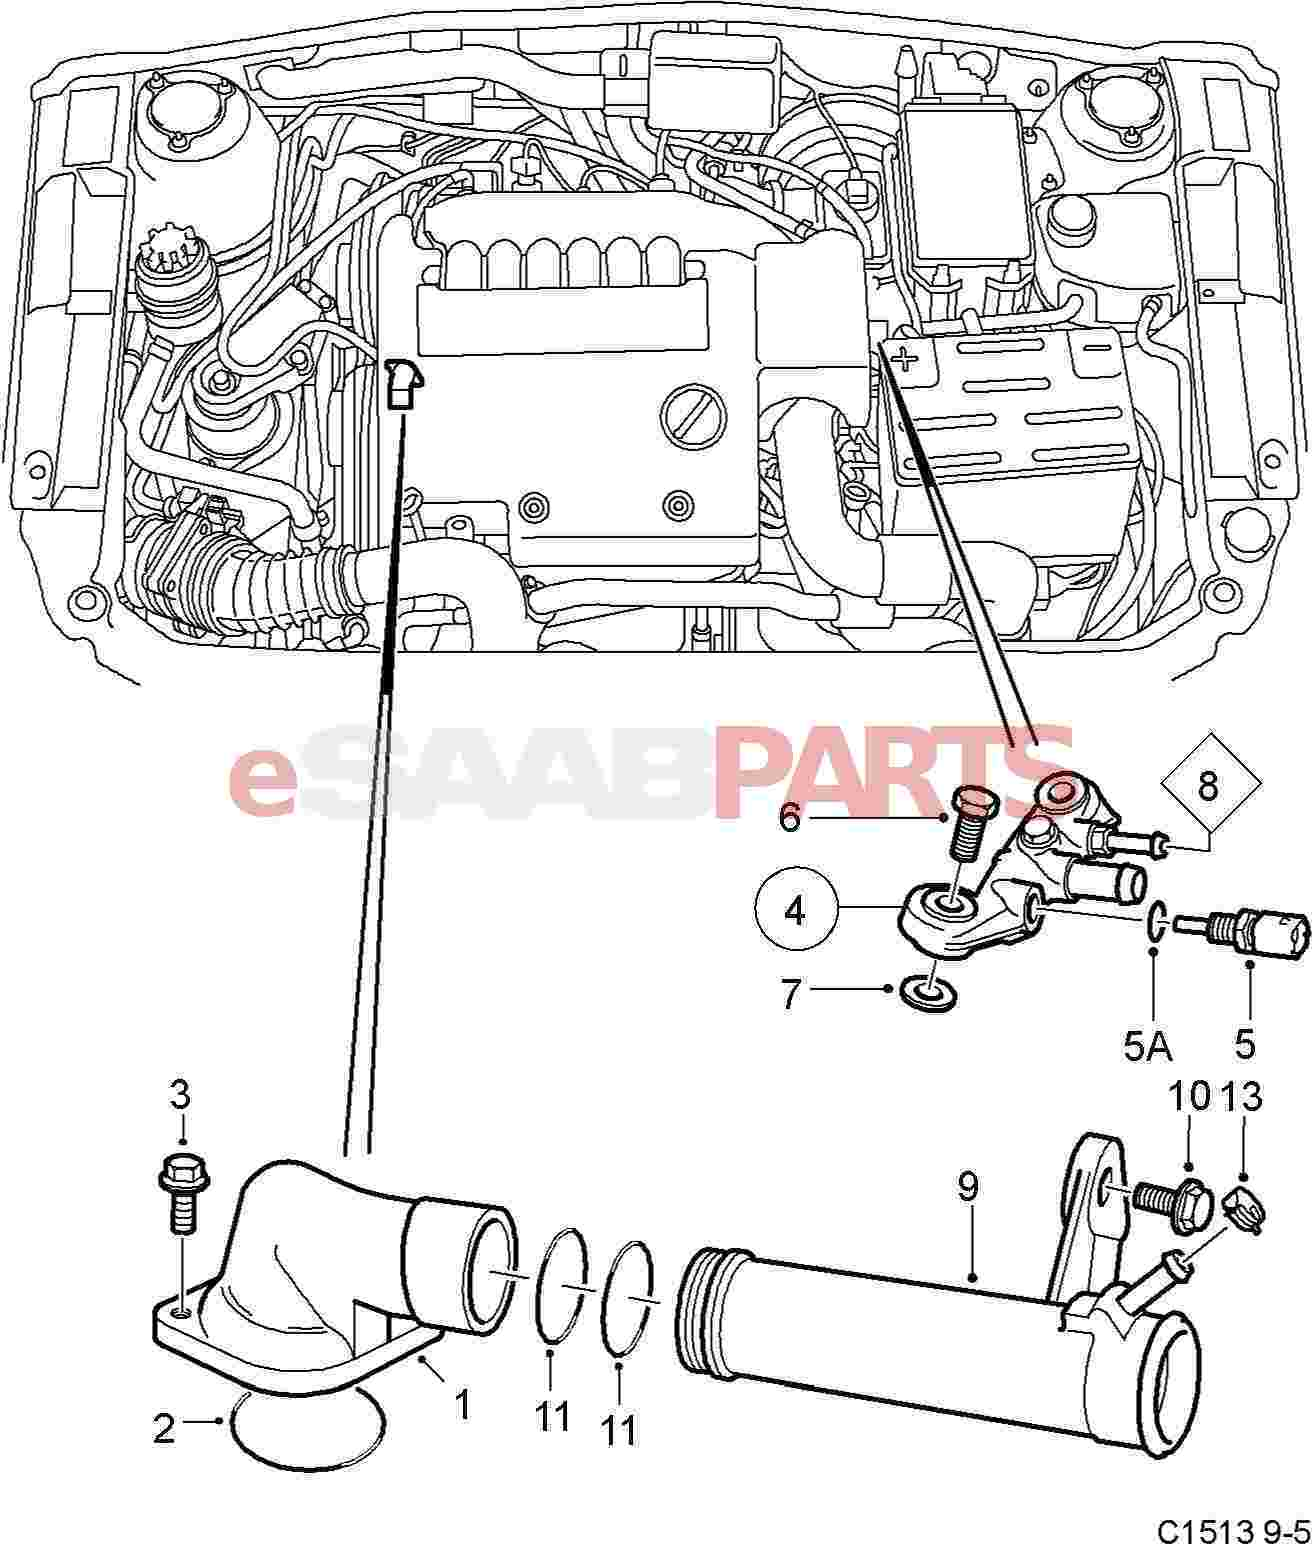 Saab 9 5 Coolant Temp Sensor Location